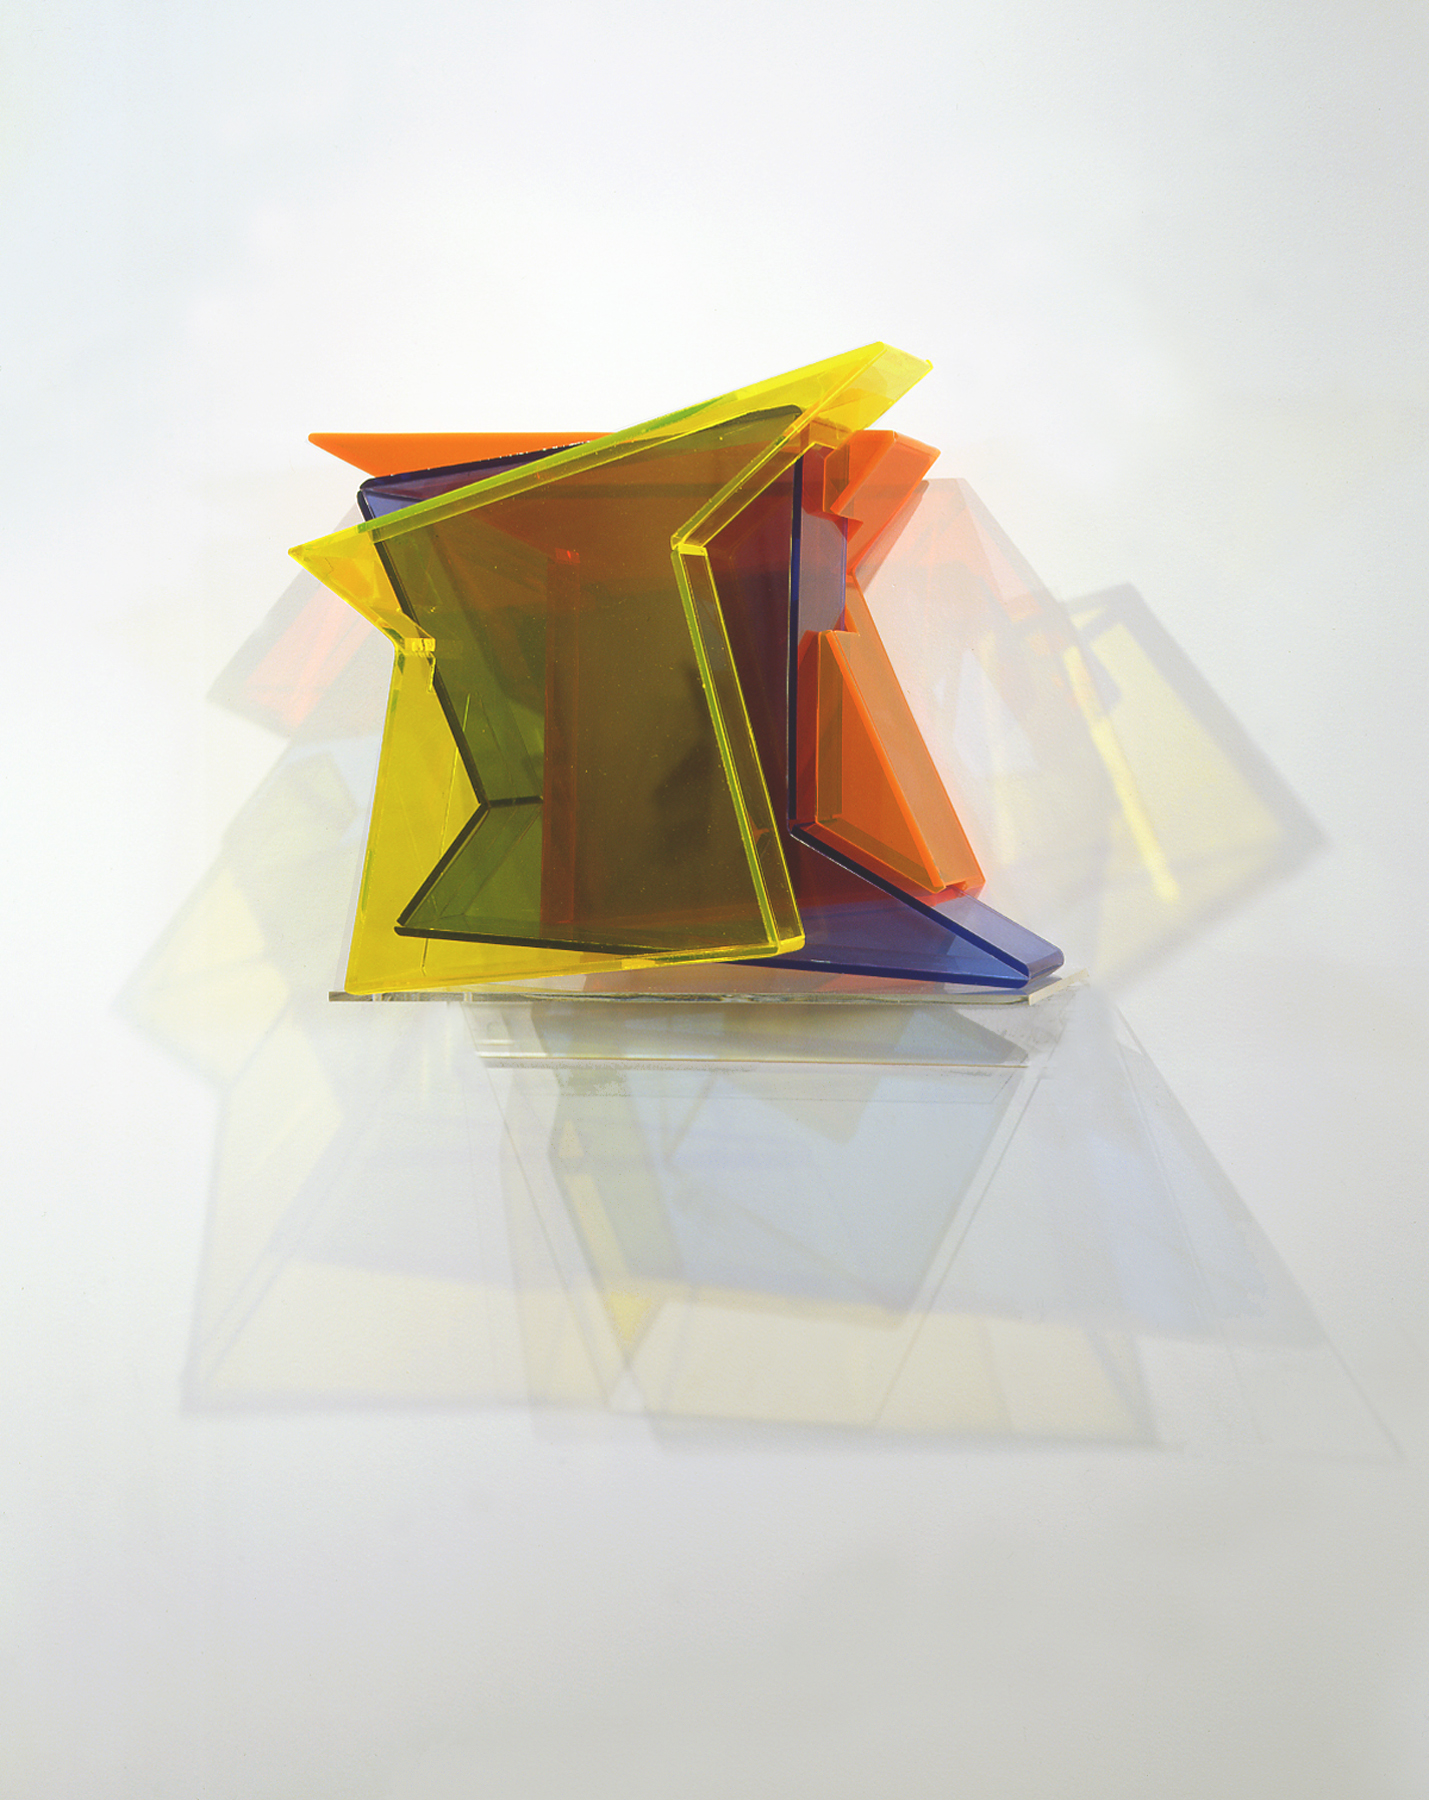 Over Tracks  (tricolor) 2006 Plexiglas 13Hx19Wx7D  inches / 48x33x18 cm